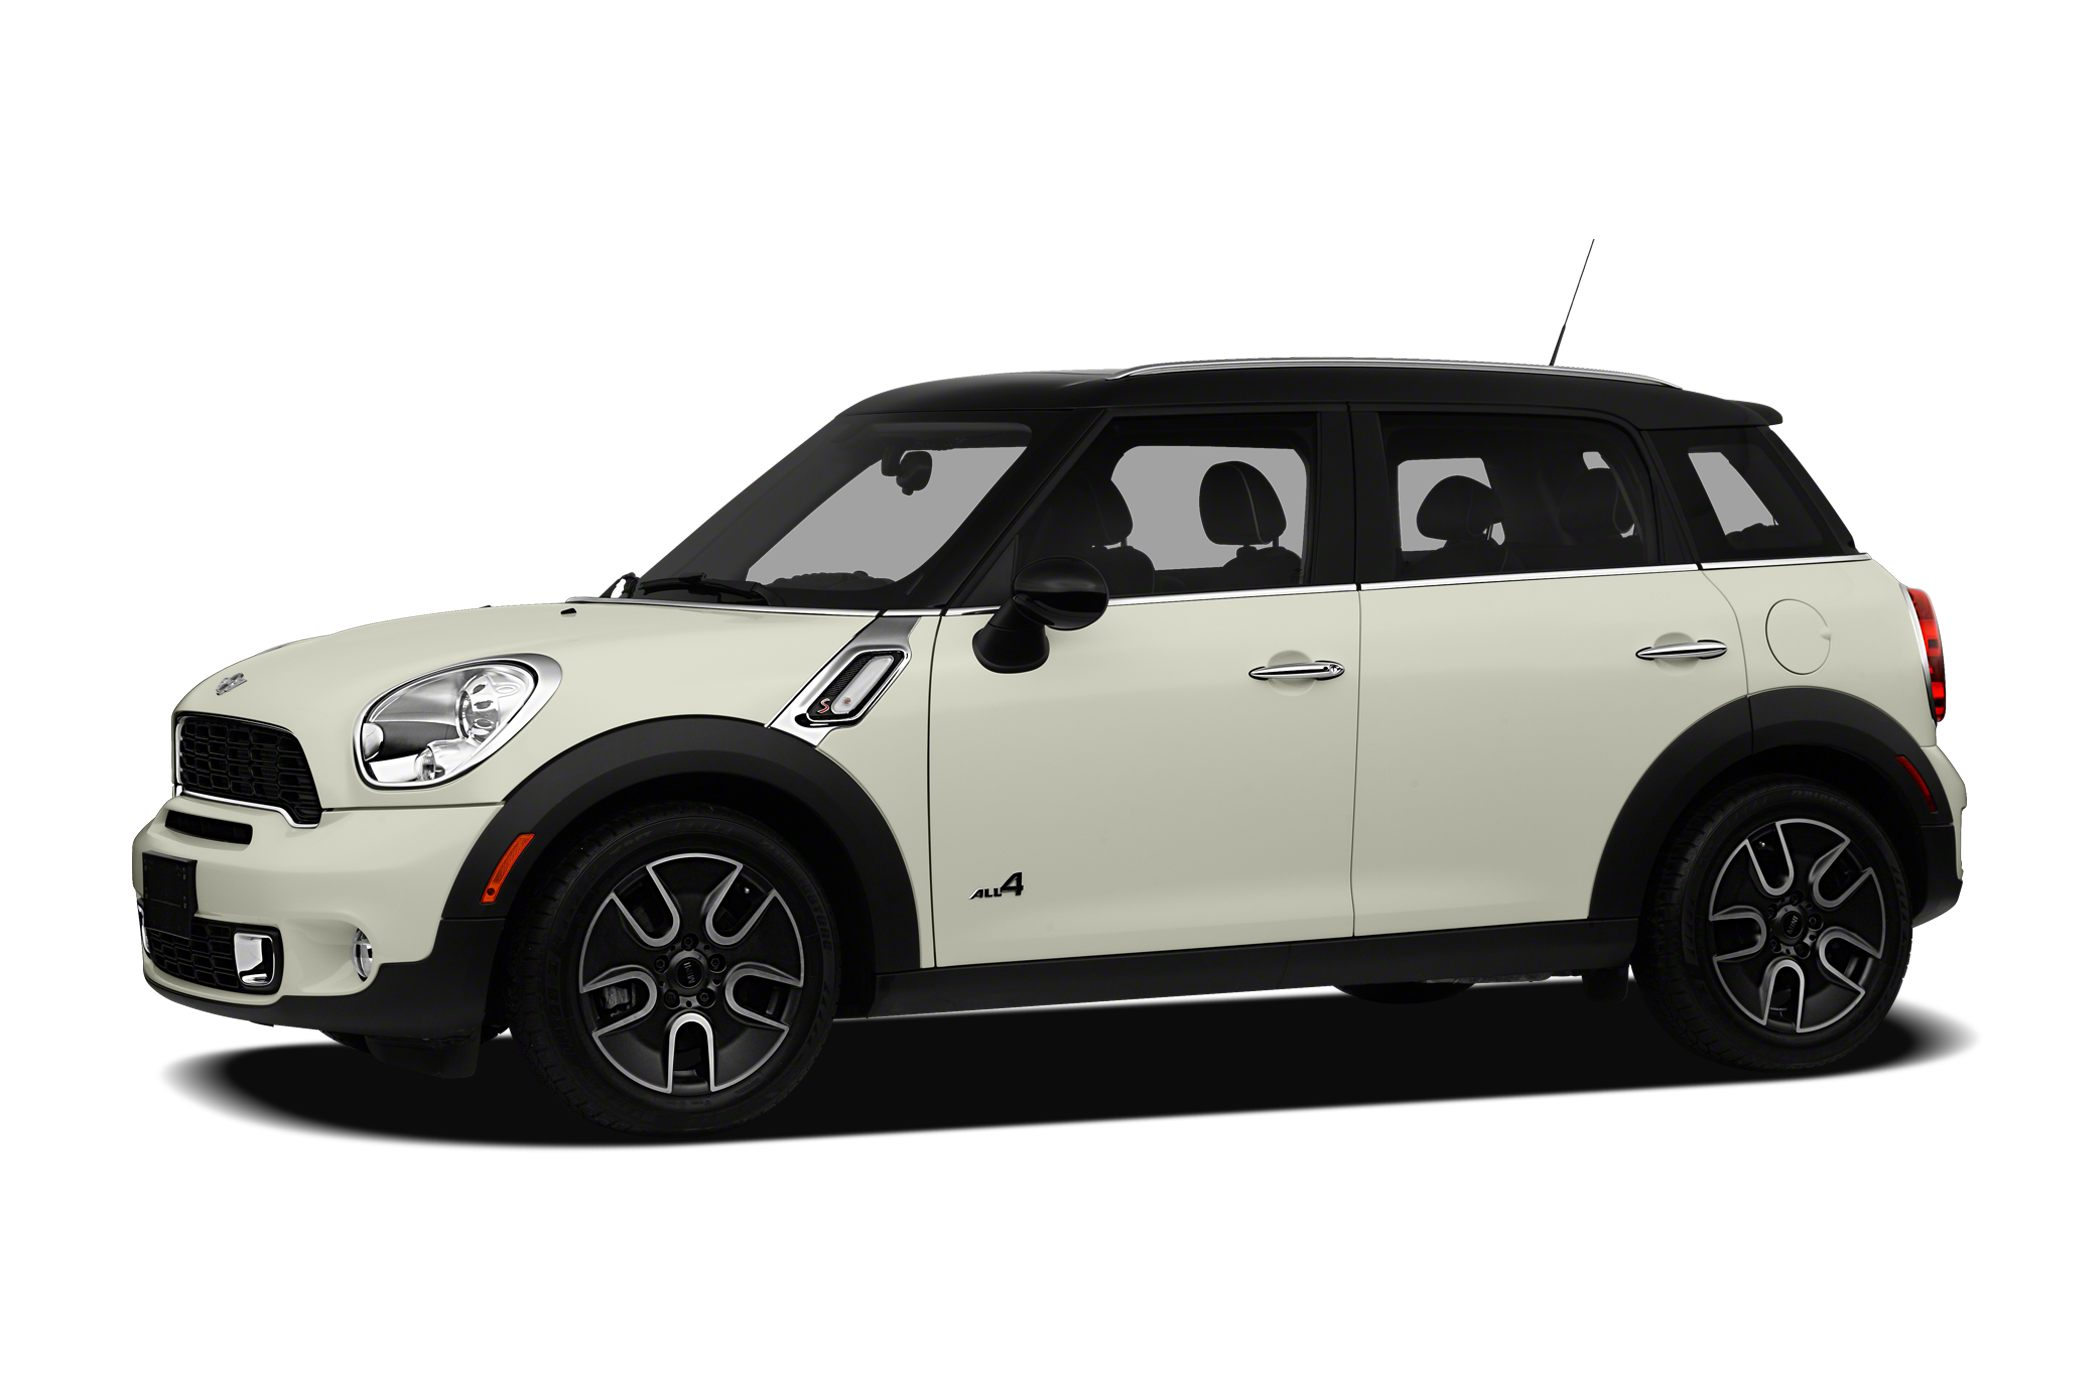 2012 MINI Cooper S Countryman Base SUV for sale in Indianapolis for $24,950 with 26,512 miles.